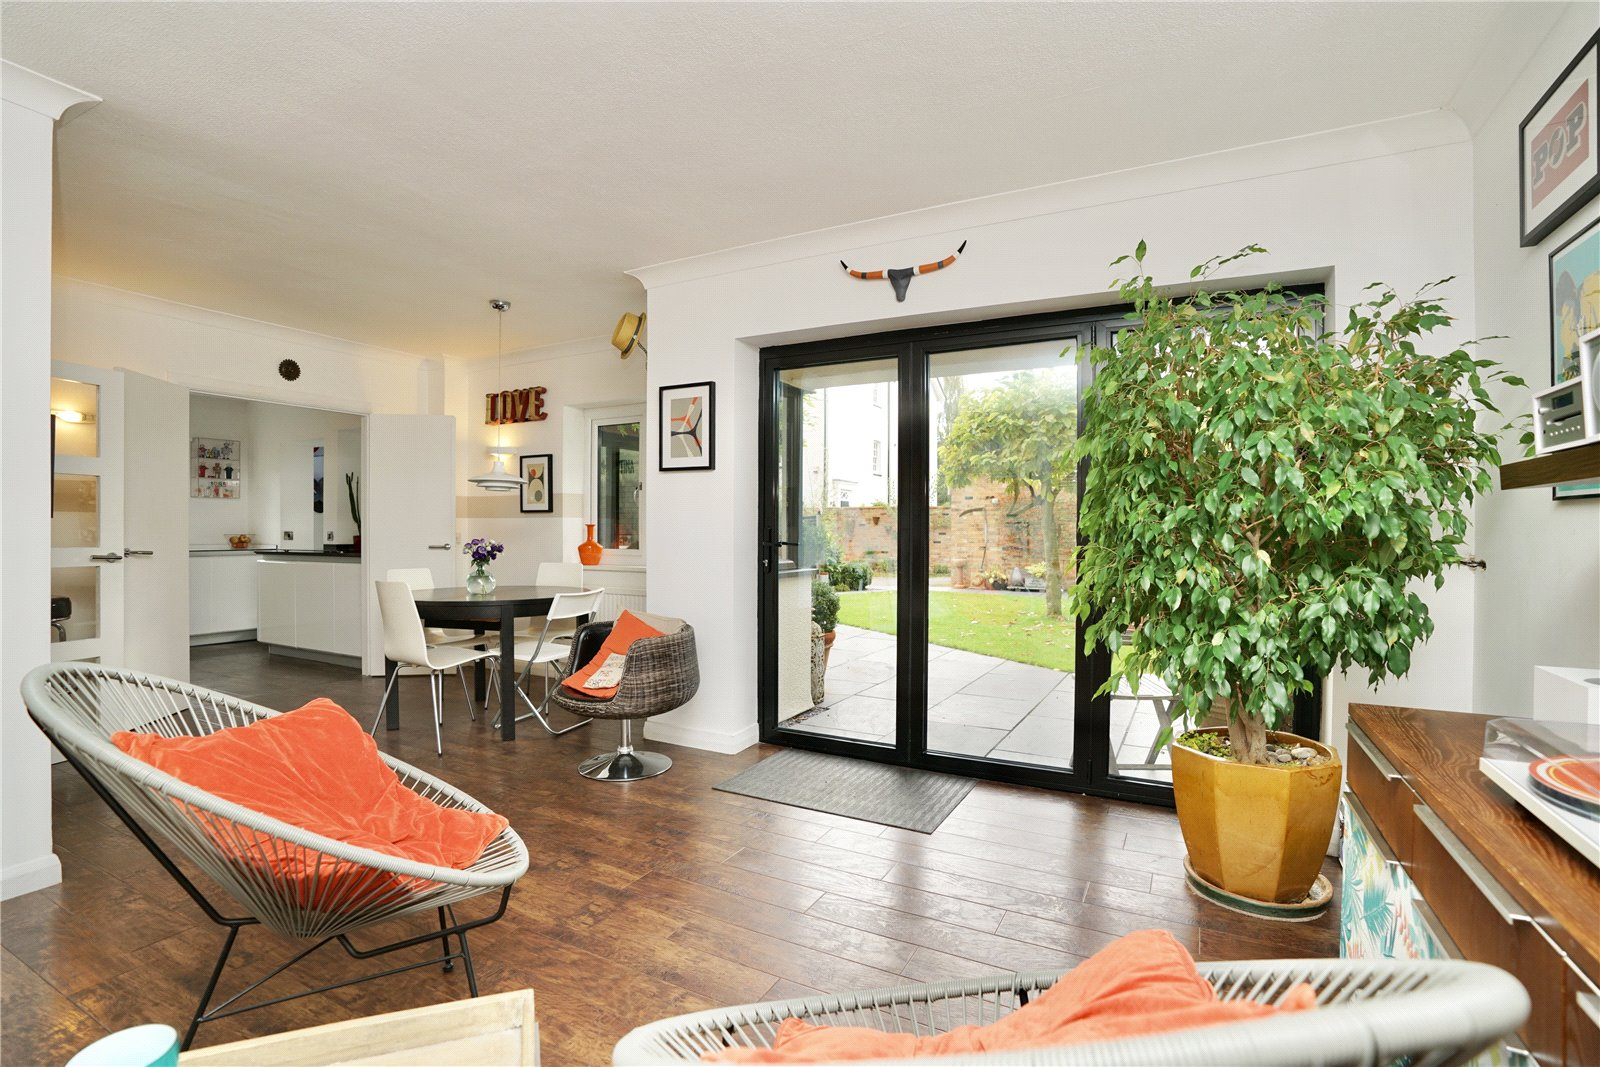 4 bed house for sale in Eaton Socon - Property Image 1